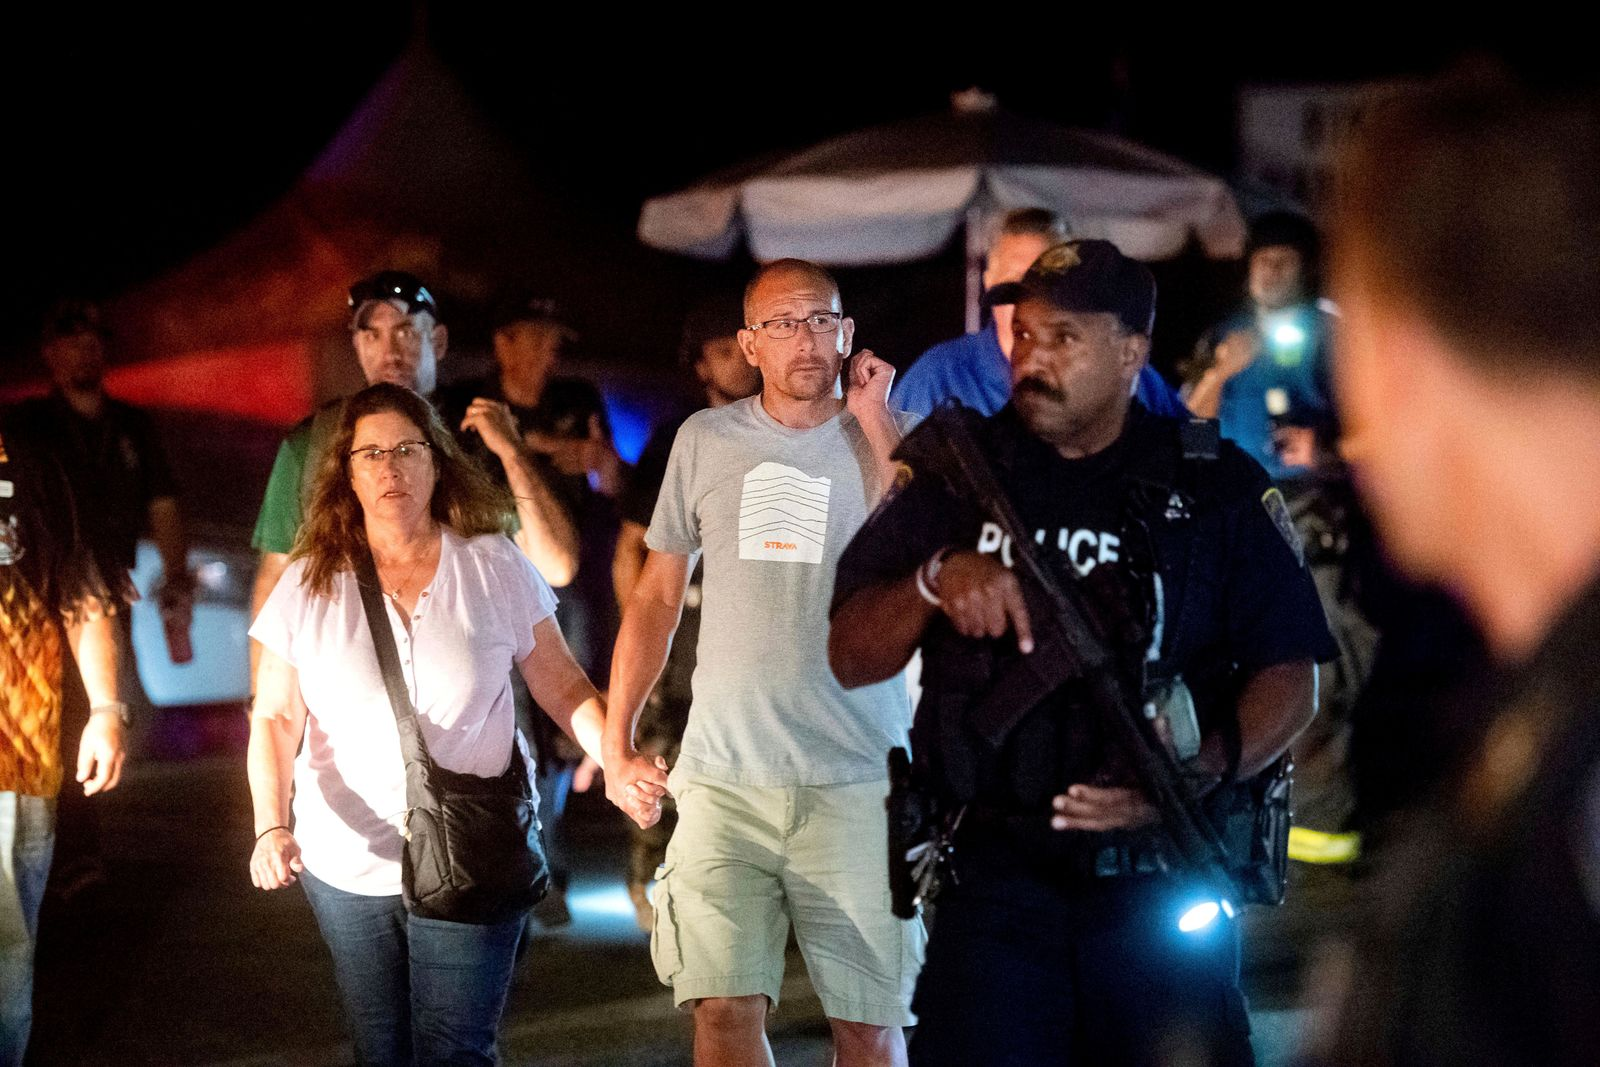 FILE - In this July 28, 2019, file photo, police officers escort people from Christmas Hill Park following a deadly shooting during the Gilroy Garlic Festival, in Gilroy, Calif. In the days and weeks since three high-profile shootings took the lives of more than two dozen people in just a week's time, law enforcement authorities have reported seeing a spike in the number of tips they are receiving from concerned relatives, friends and co-workers of people who appear bent on carrying out the next mass shooting. (AP Photo/Noah Berger, File)